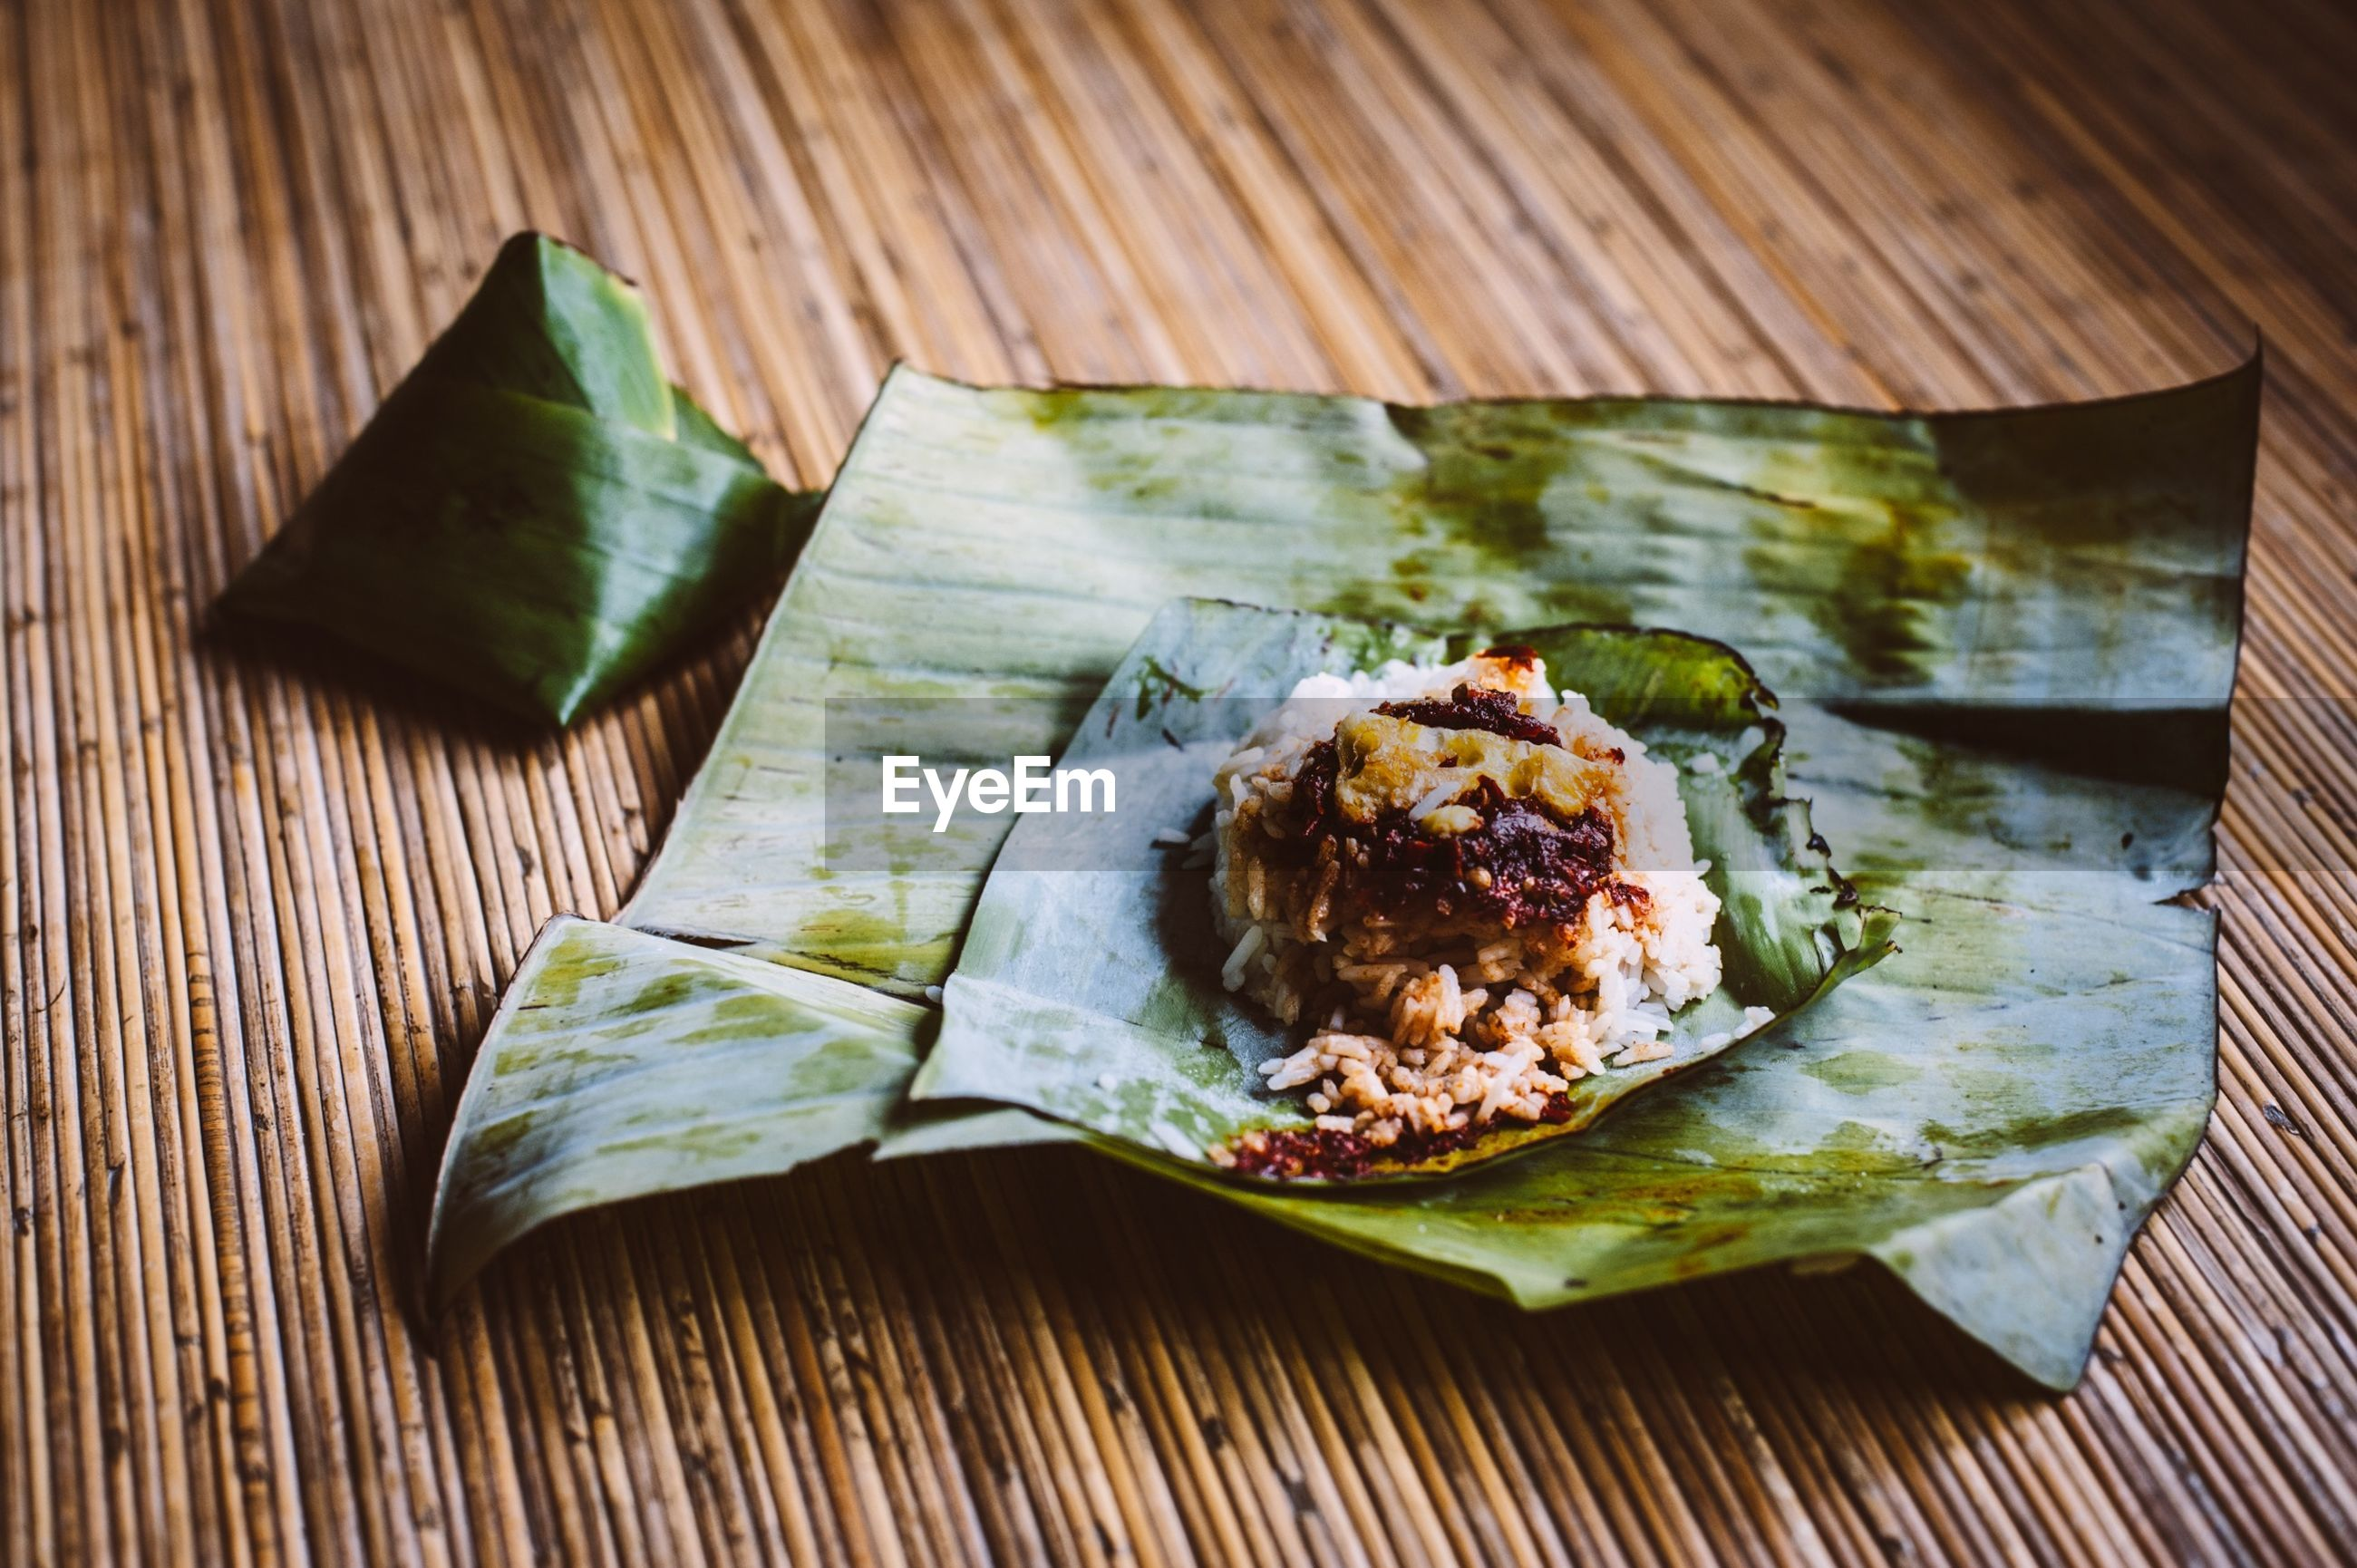 Close-up of rice served on banana leaves